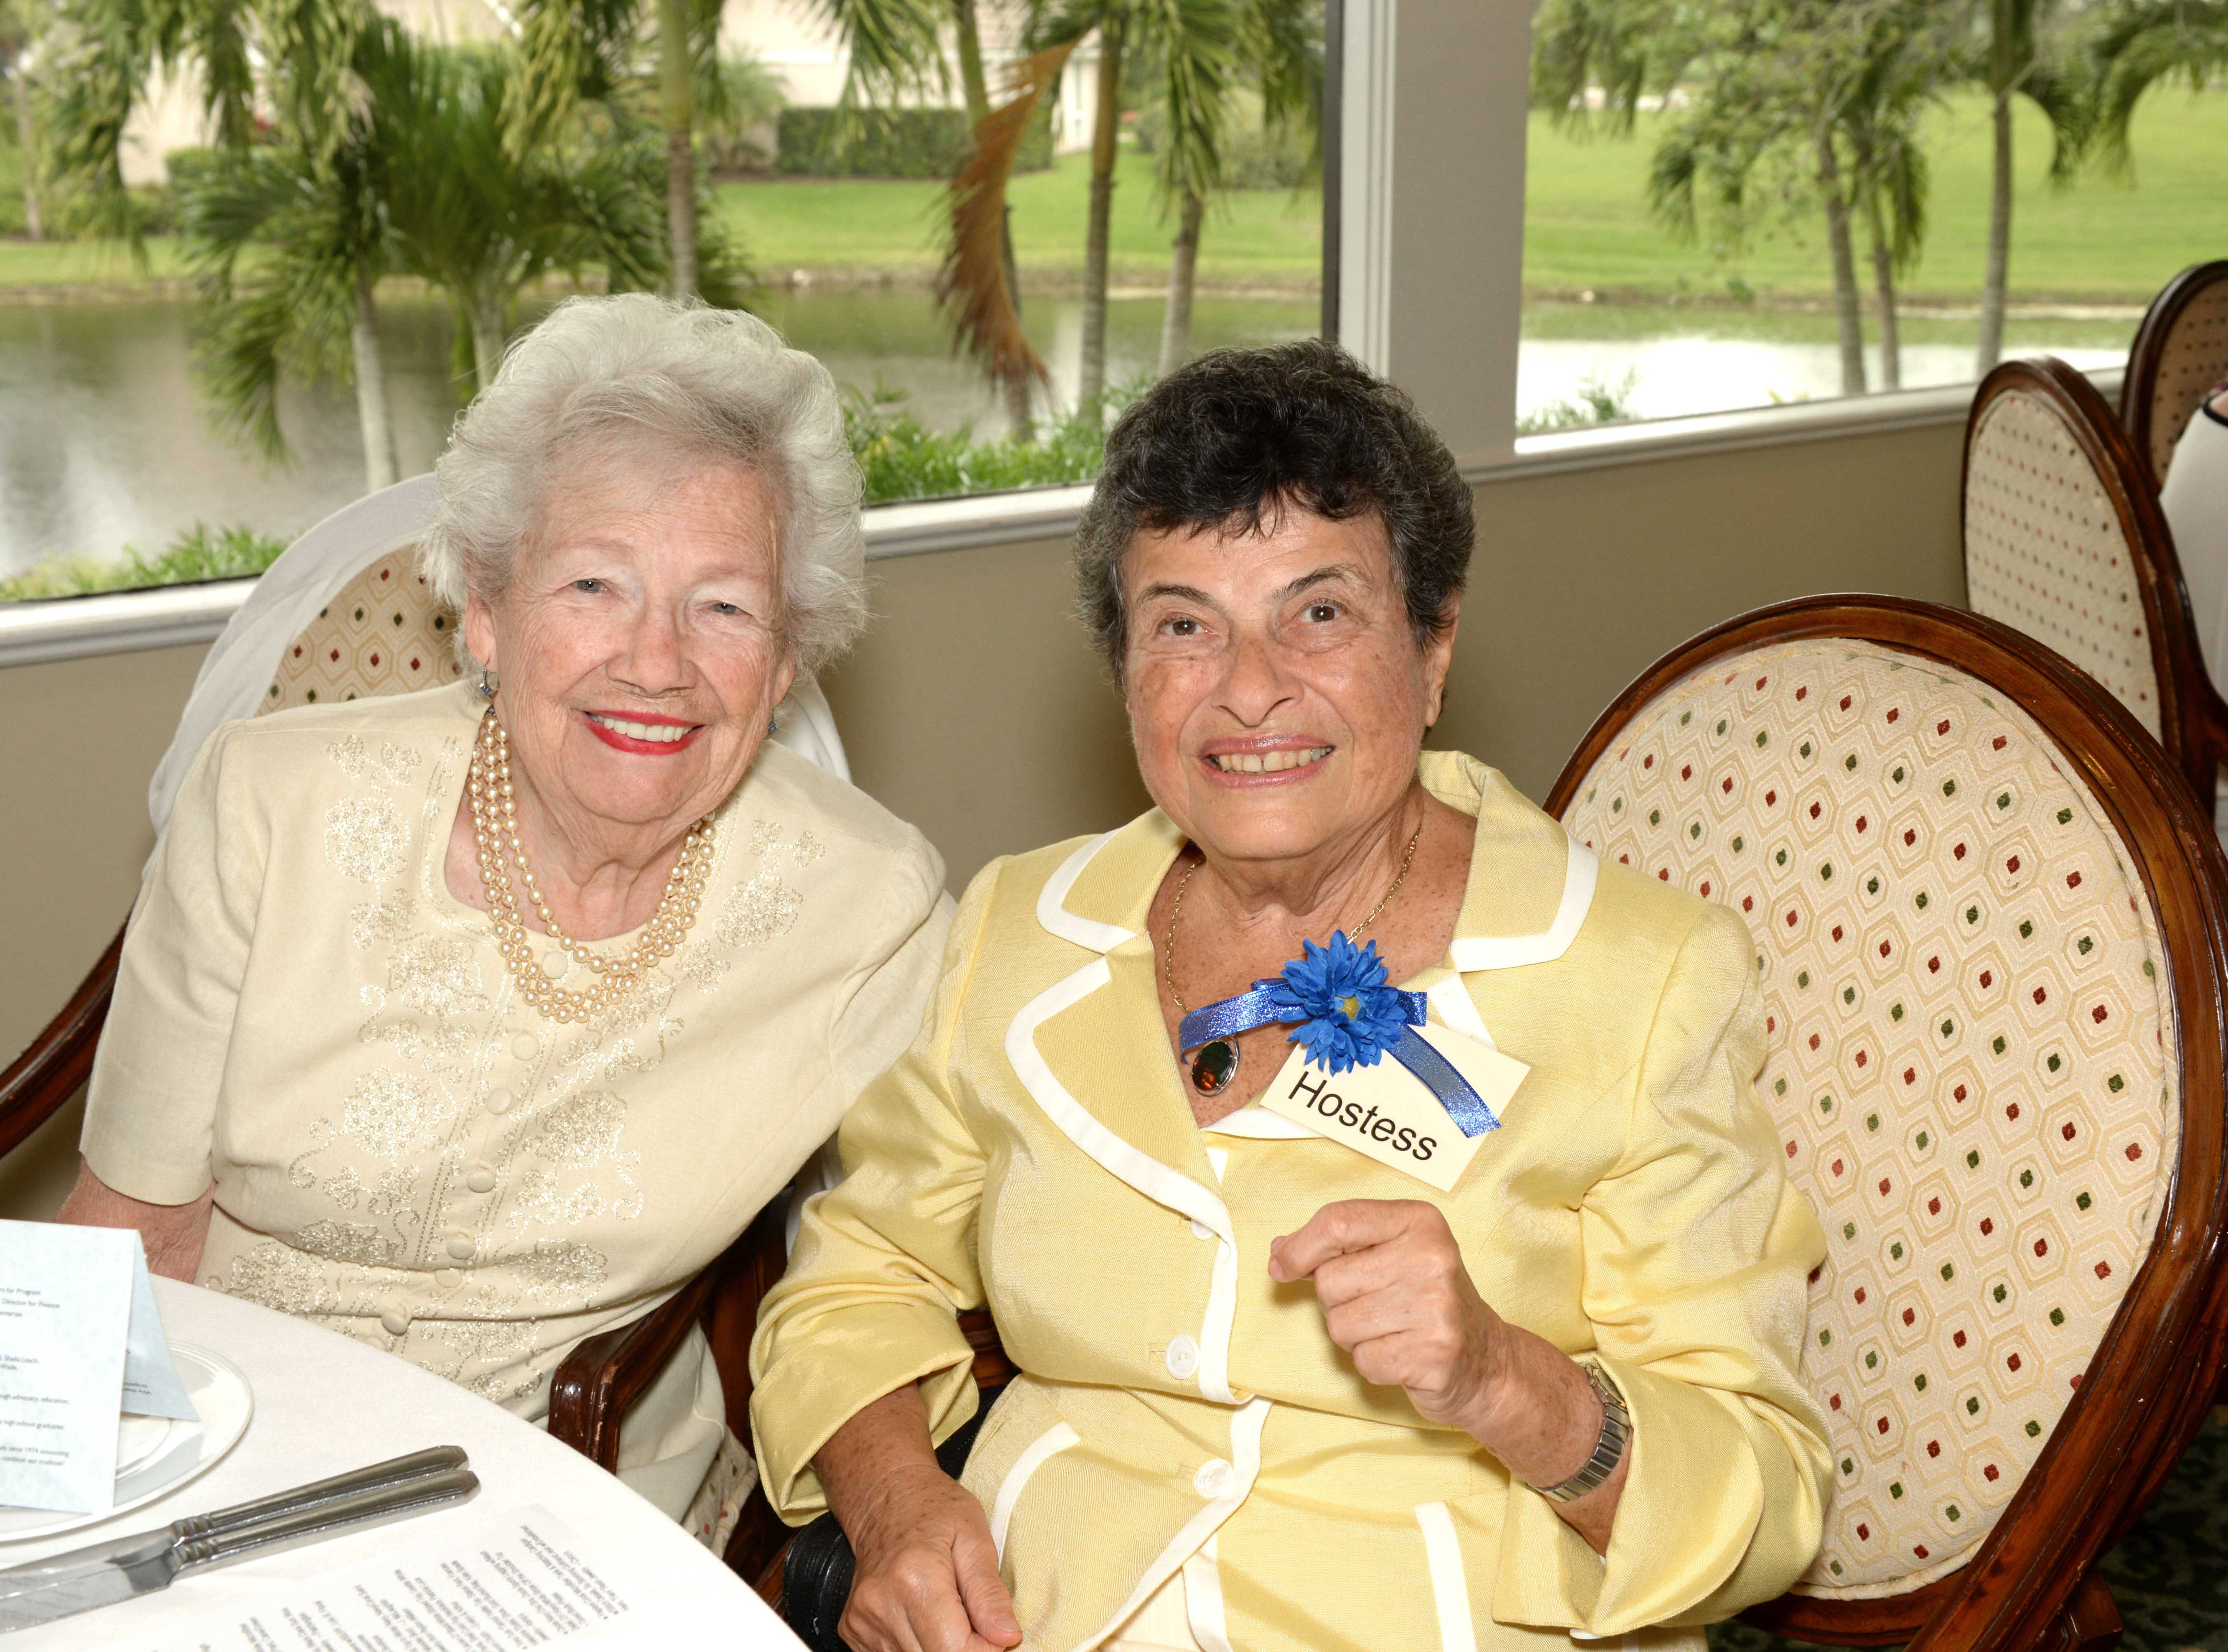 Ruth Perry, left, and Susan Zukotynski at Mariner Sands Country Club for the Sapphire Anniversary party of the American Association of University Women Stuart Branch.